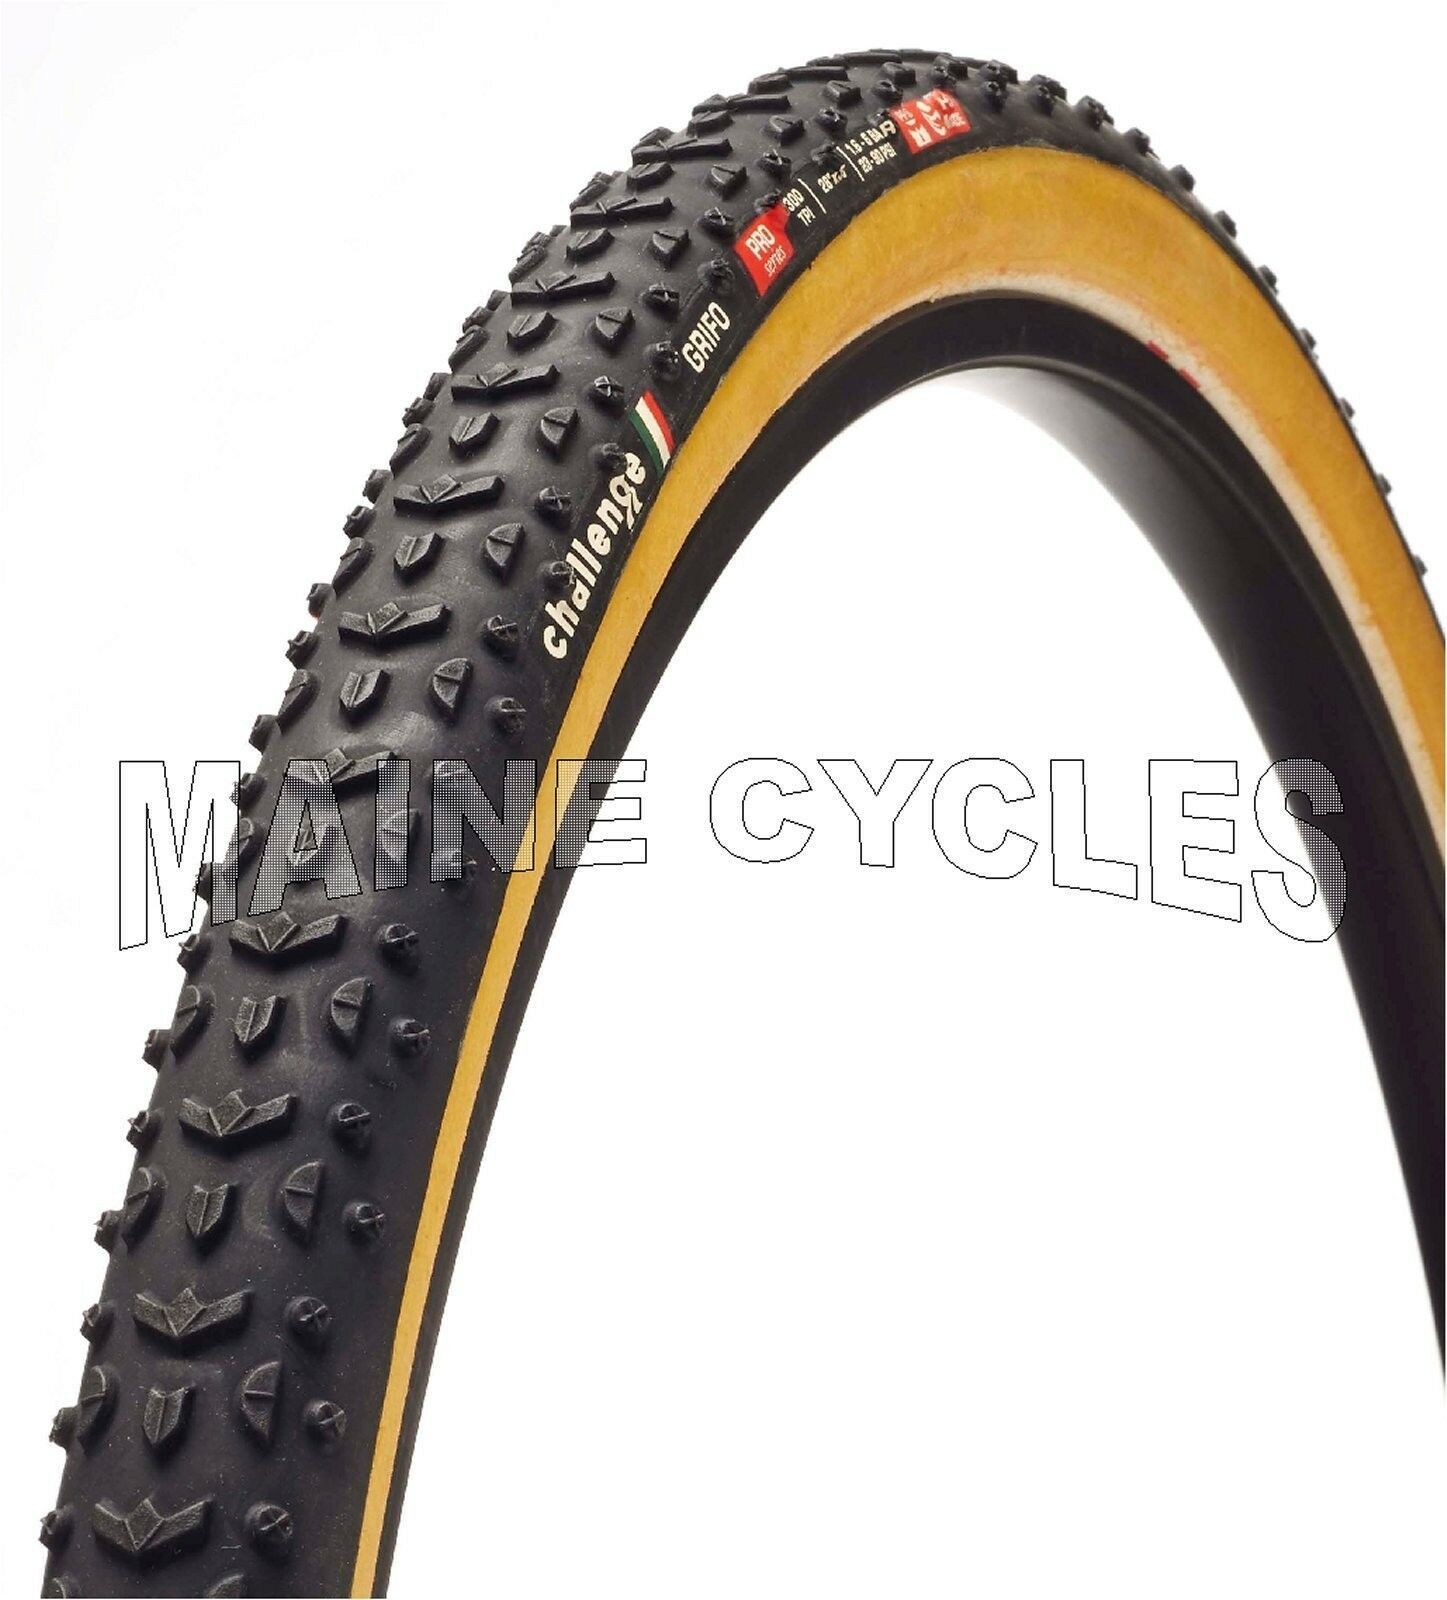 Challenge Grifo PRO cyclocross tubular 700  x 33  professional integrated online shopping mall